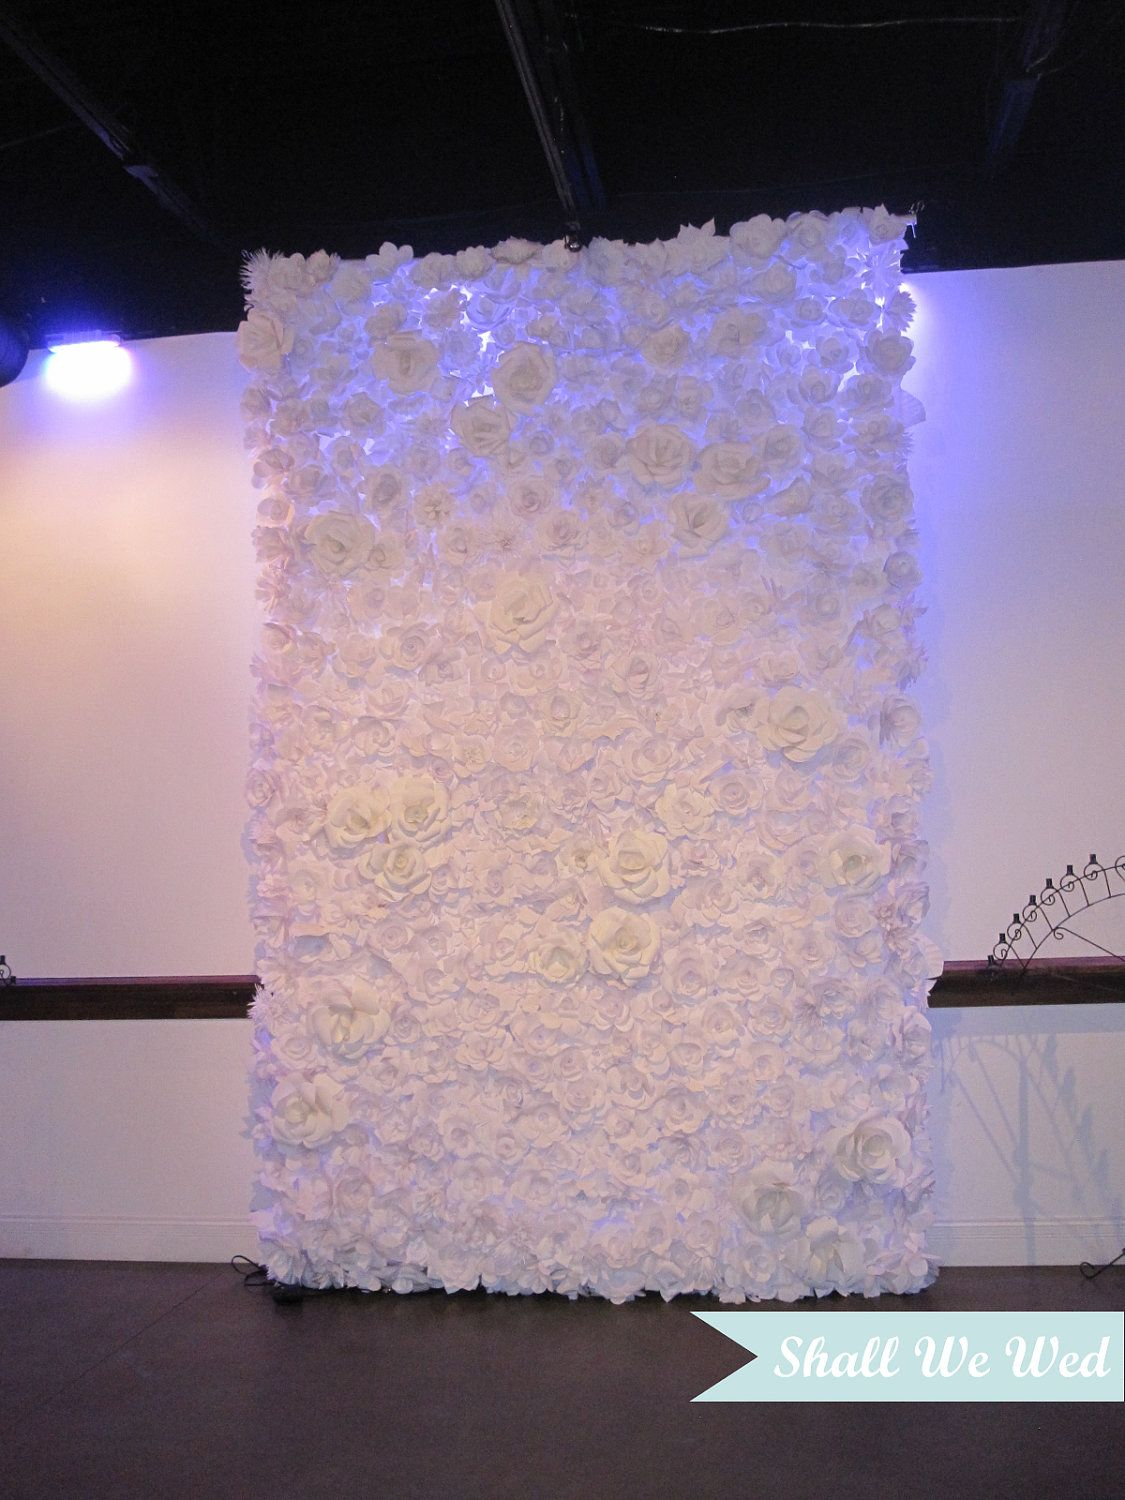 Amazing Endless Handmade Paper Flower Wedding Backdrop Would Be Gorgeous For Ceremony Backdrop